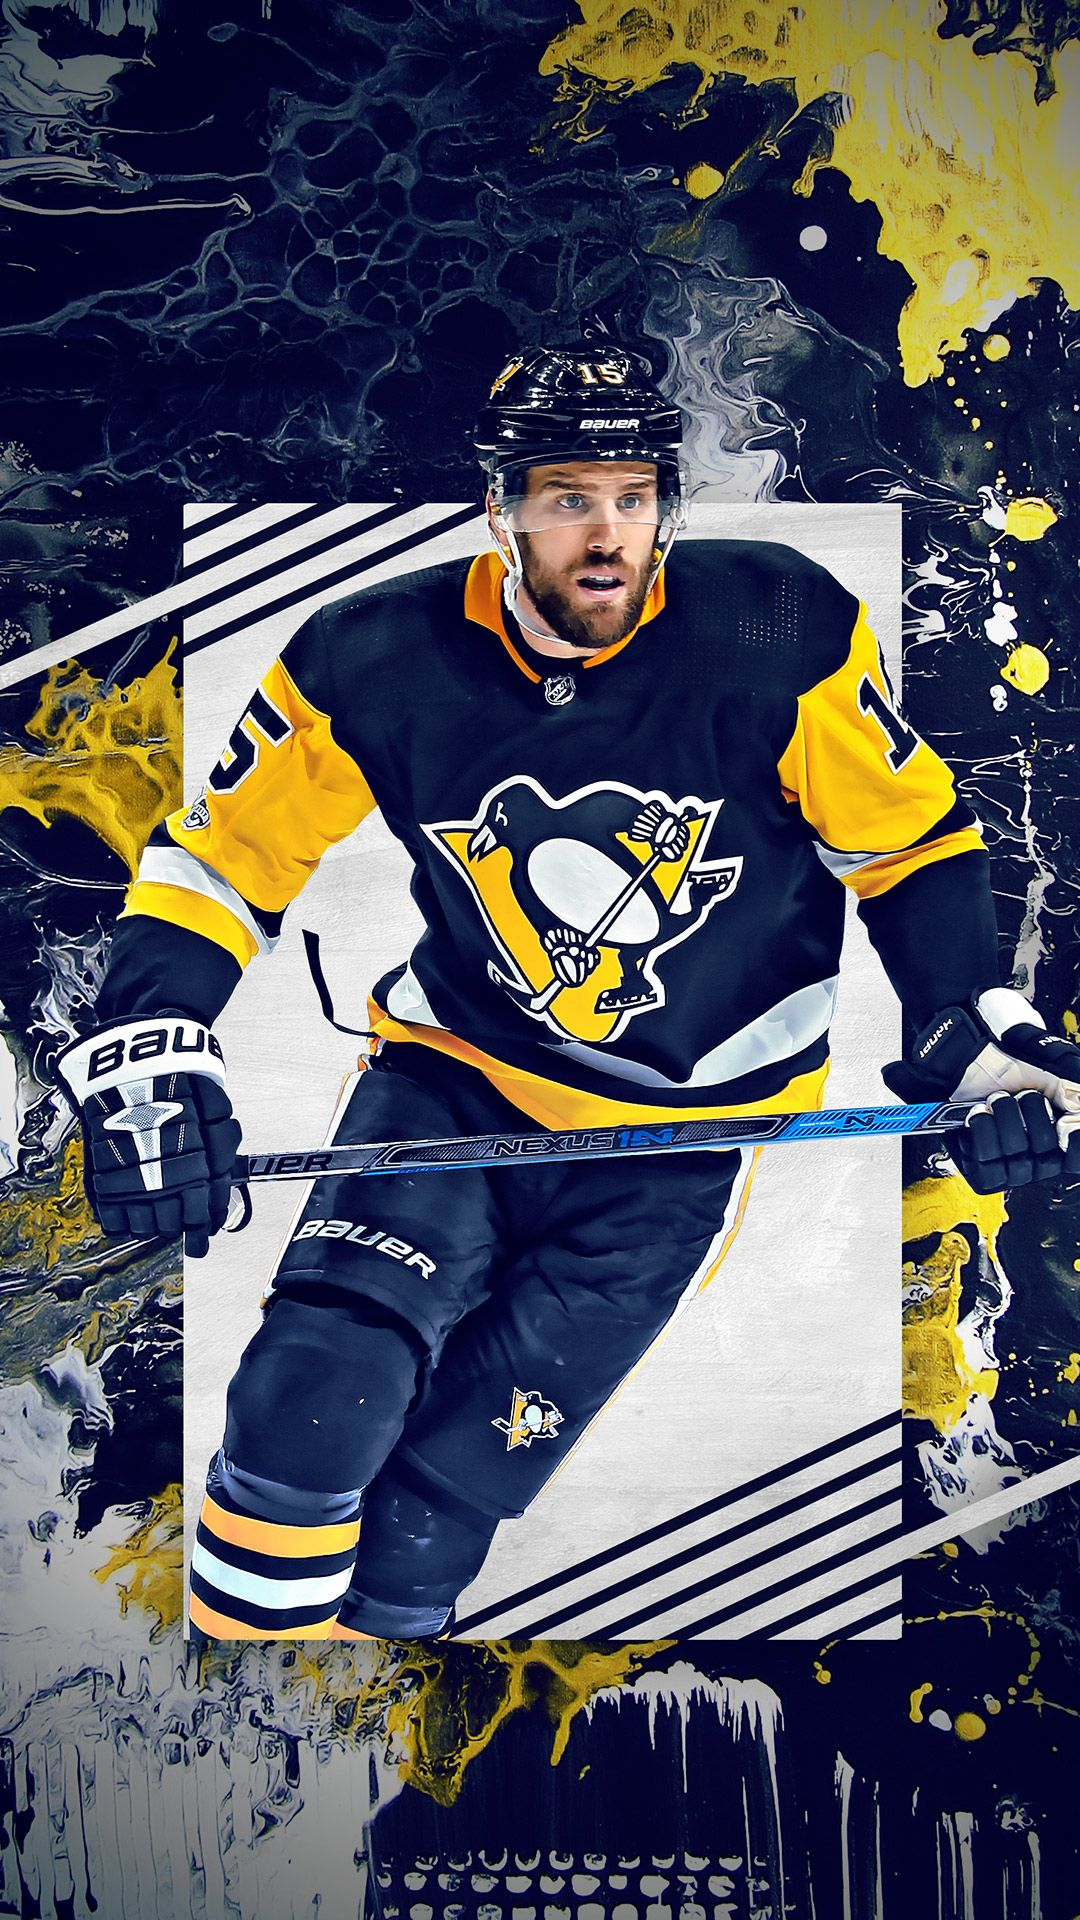 Nhl iphone wallpapers top free nhl iphone backgrounds - Pittsburgh penguins iphone wallpaper ...